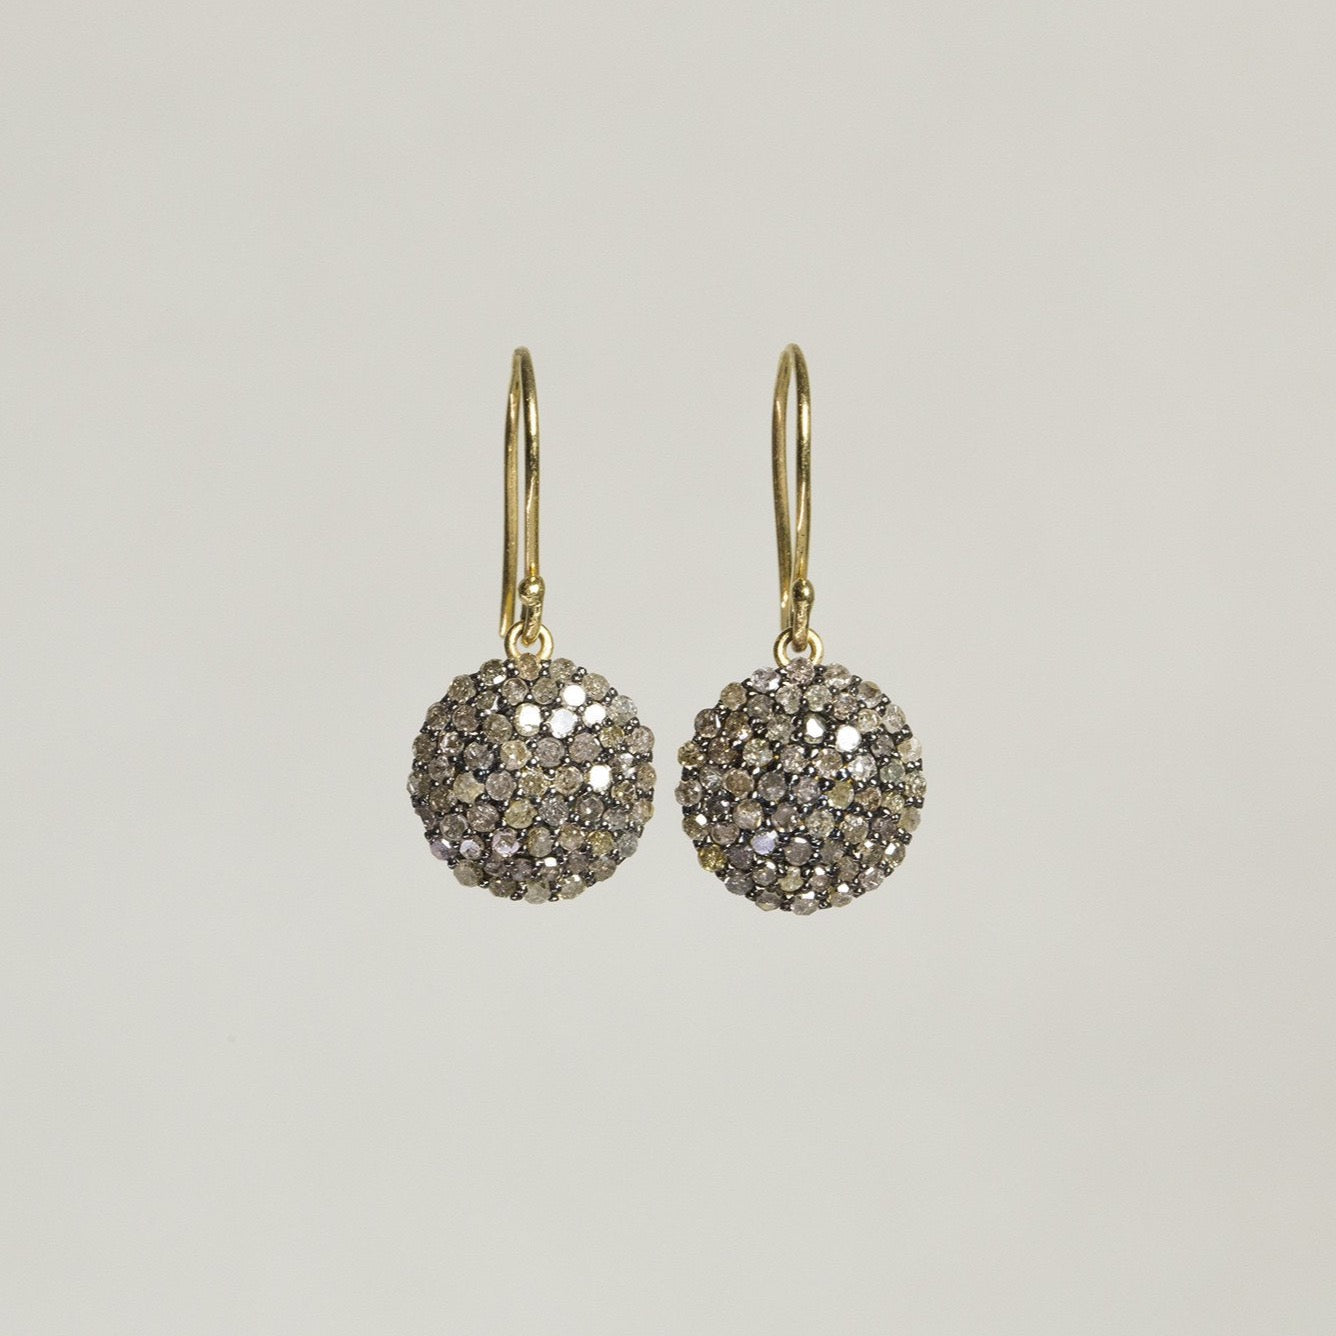 felt Affordable Diamond Range Discs Hook Earrings